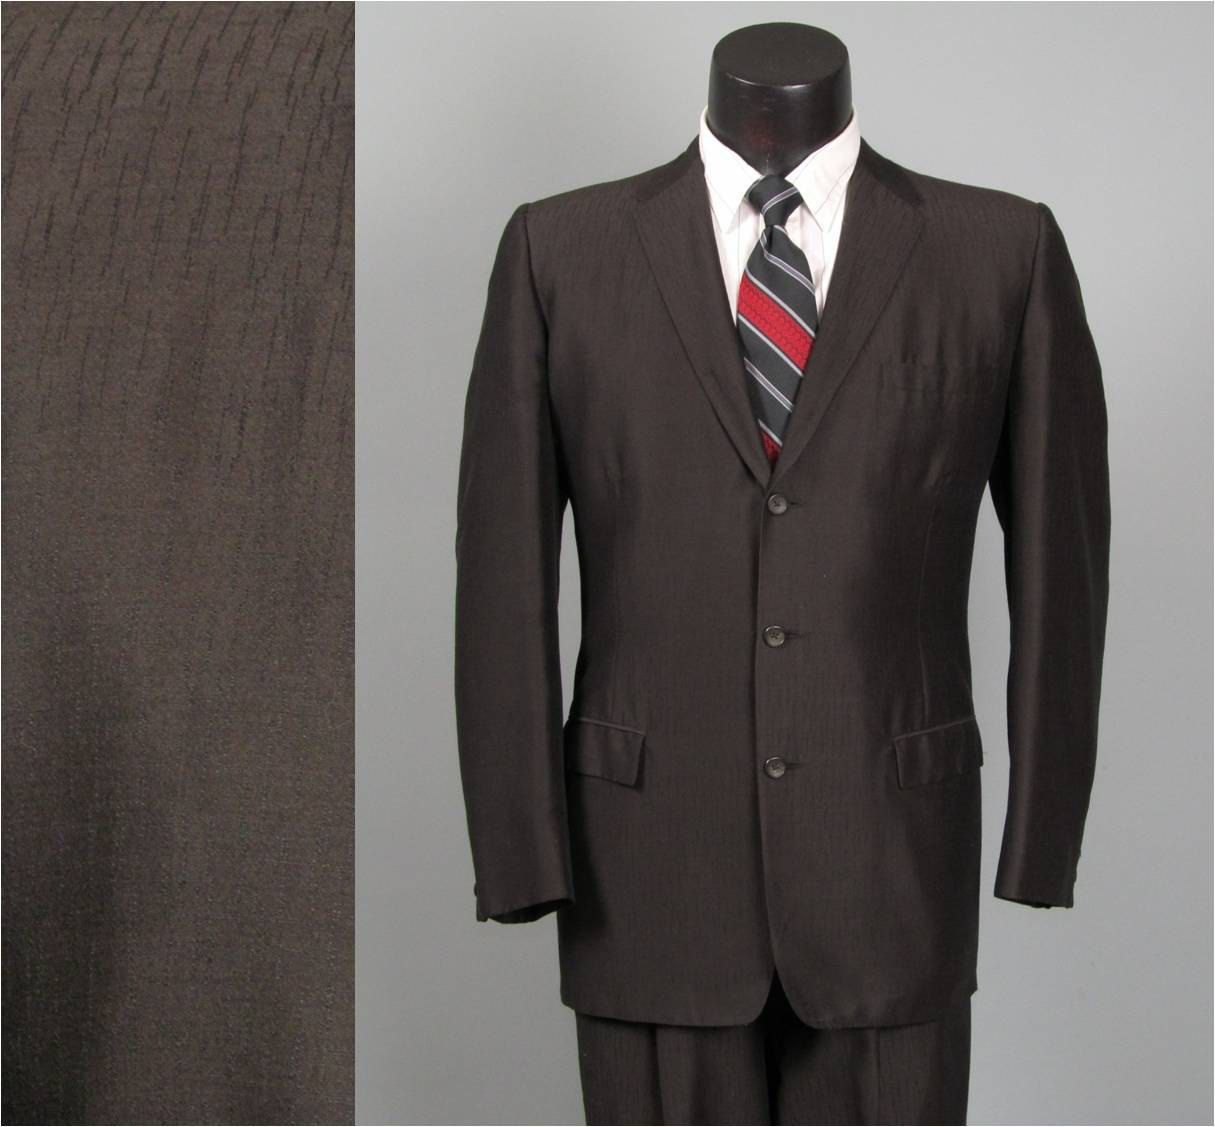 Vintage Mens Suit 1950s Rockabilly Shiny Black By Jauntyrooster